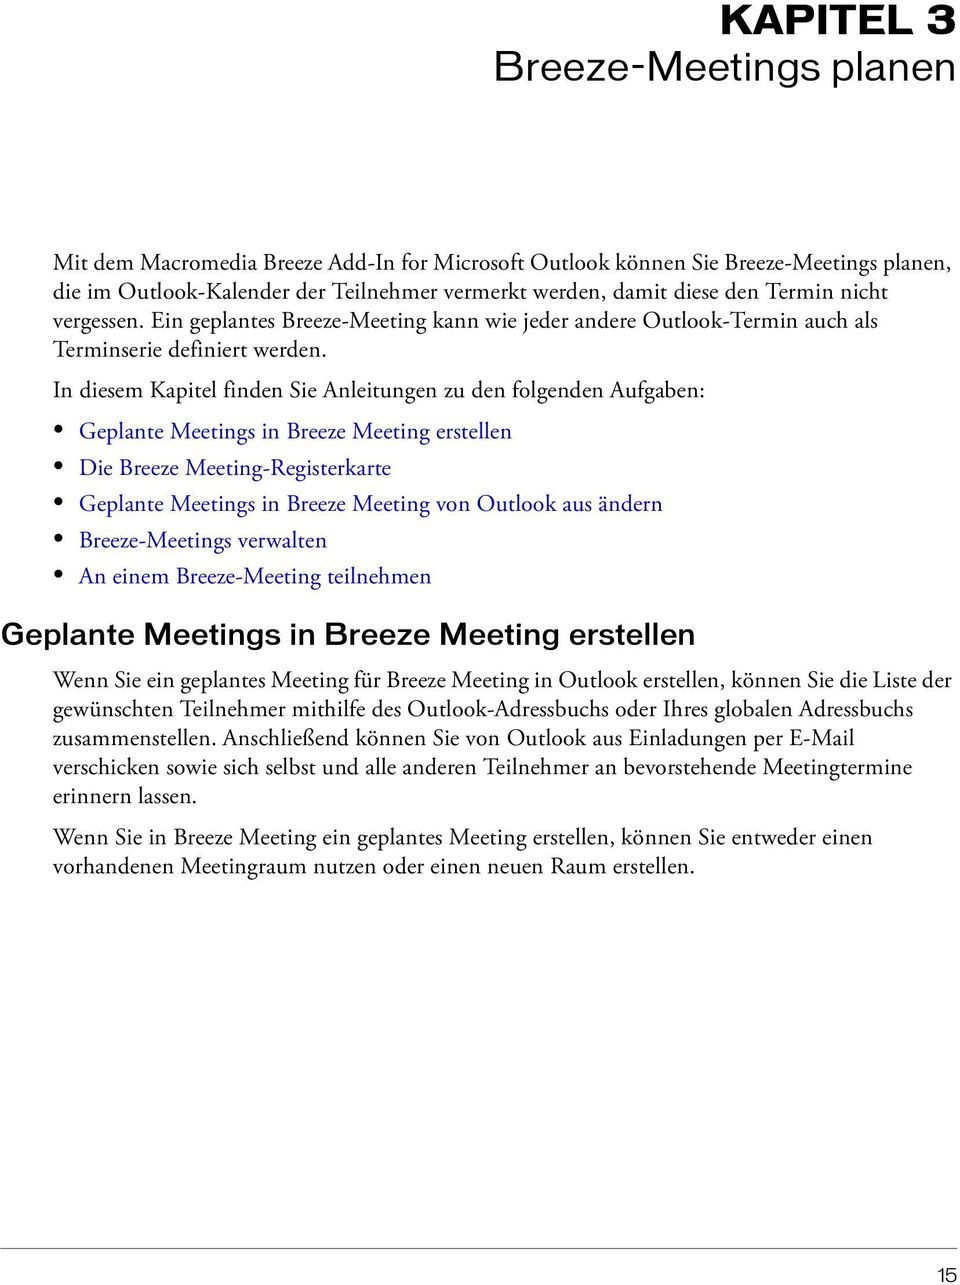 In diesem Kapitel finden Sie Anleitungen zu den folgenden Aufgaben: Geplante Meetings in Breeze Meeting erstellen Die Breeze Meeting-Registerkarte Geplante Meetings in Breeze Meeting von Outlook aus